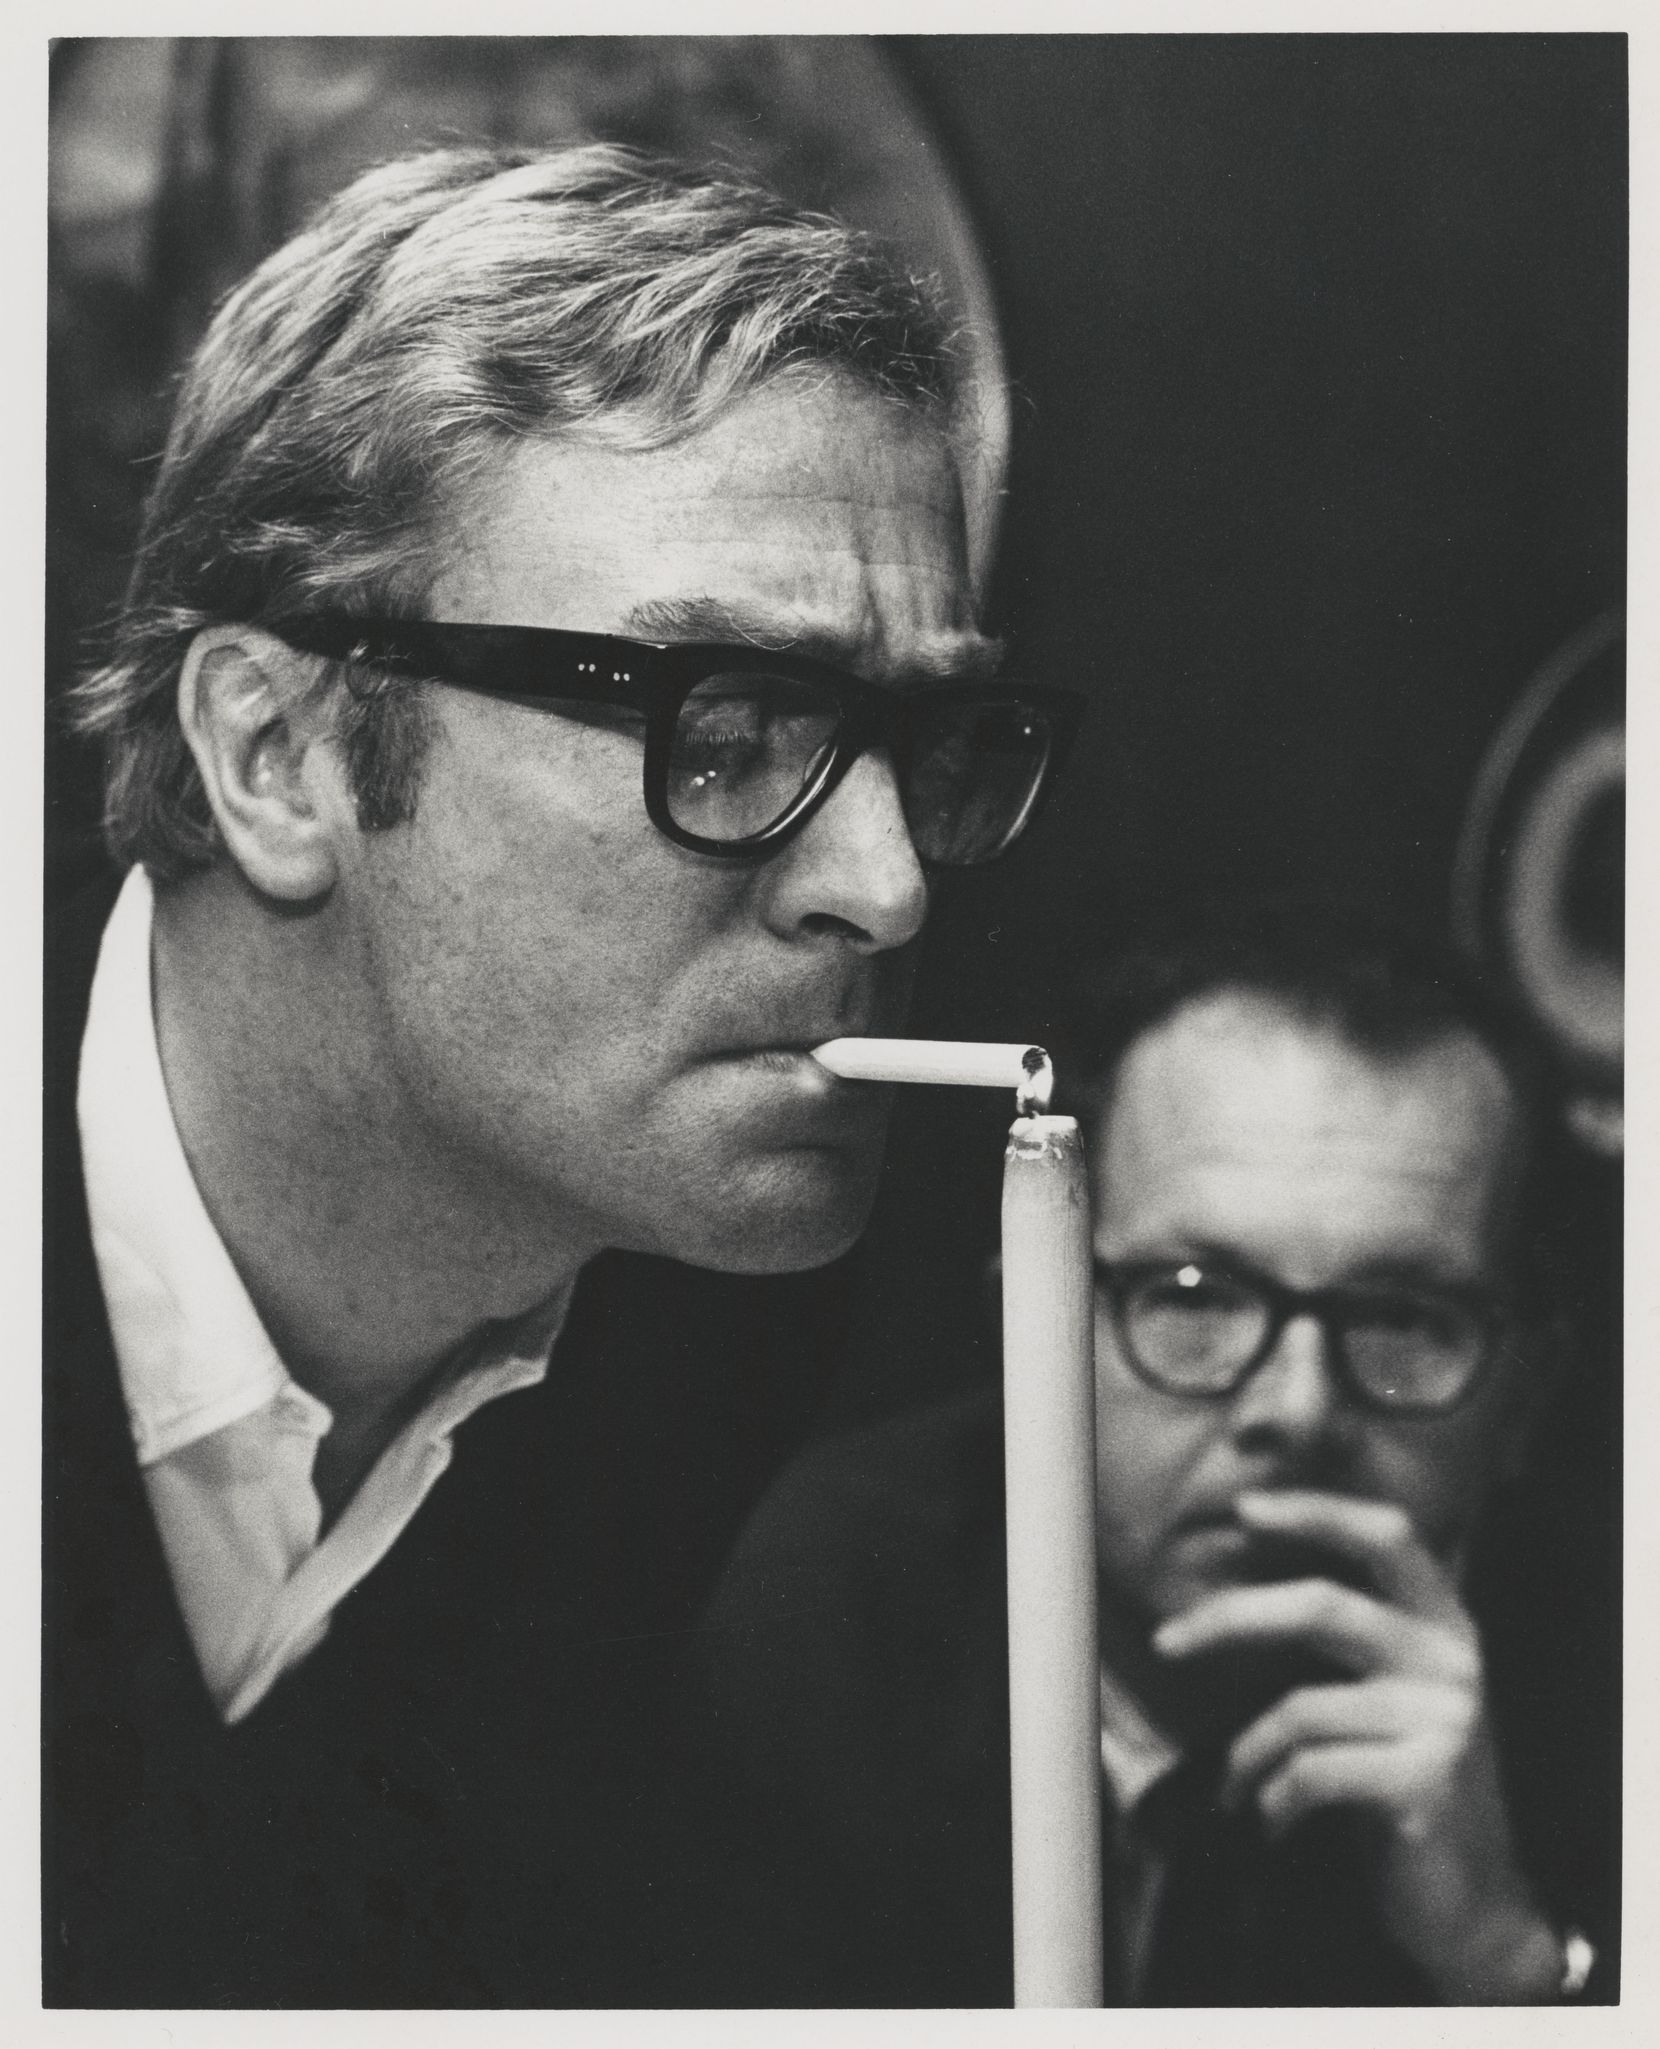 """Actor Michael Caine lights a cigarette using a candle, circa 1970s. The photo is included in the exhibit, """"Andy Hanson: Picturing Dallas, 1960-2008, on display at the in the Fondren Library at SMU, through Jan. 29, 2020. Using photos from Hanson's vast photographic archive, held by the DeGolyer Library at SMU the show celebrates Hanson's long career in Dallas, where he was a staff photographer for the Dallas Times Herald -- and later an independent photographer -- covering society, politics, the performing arts, and major news events of the day."""